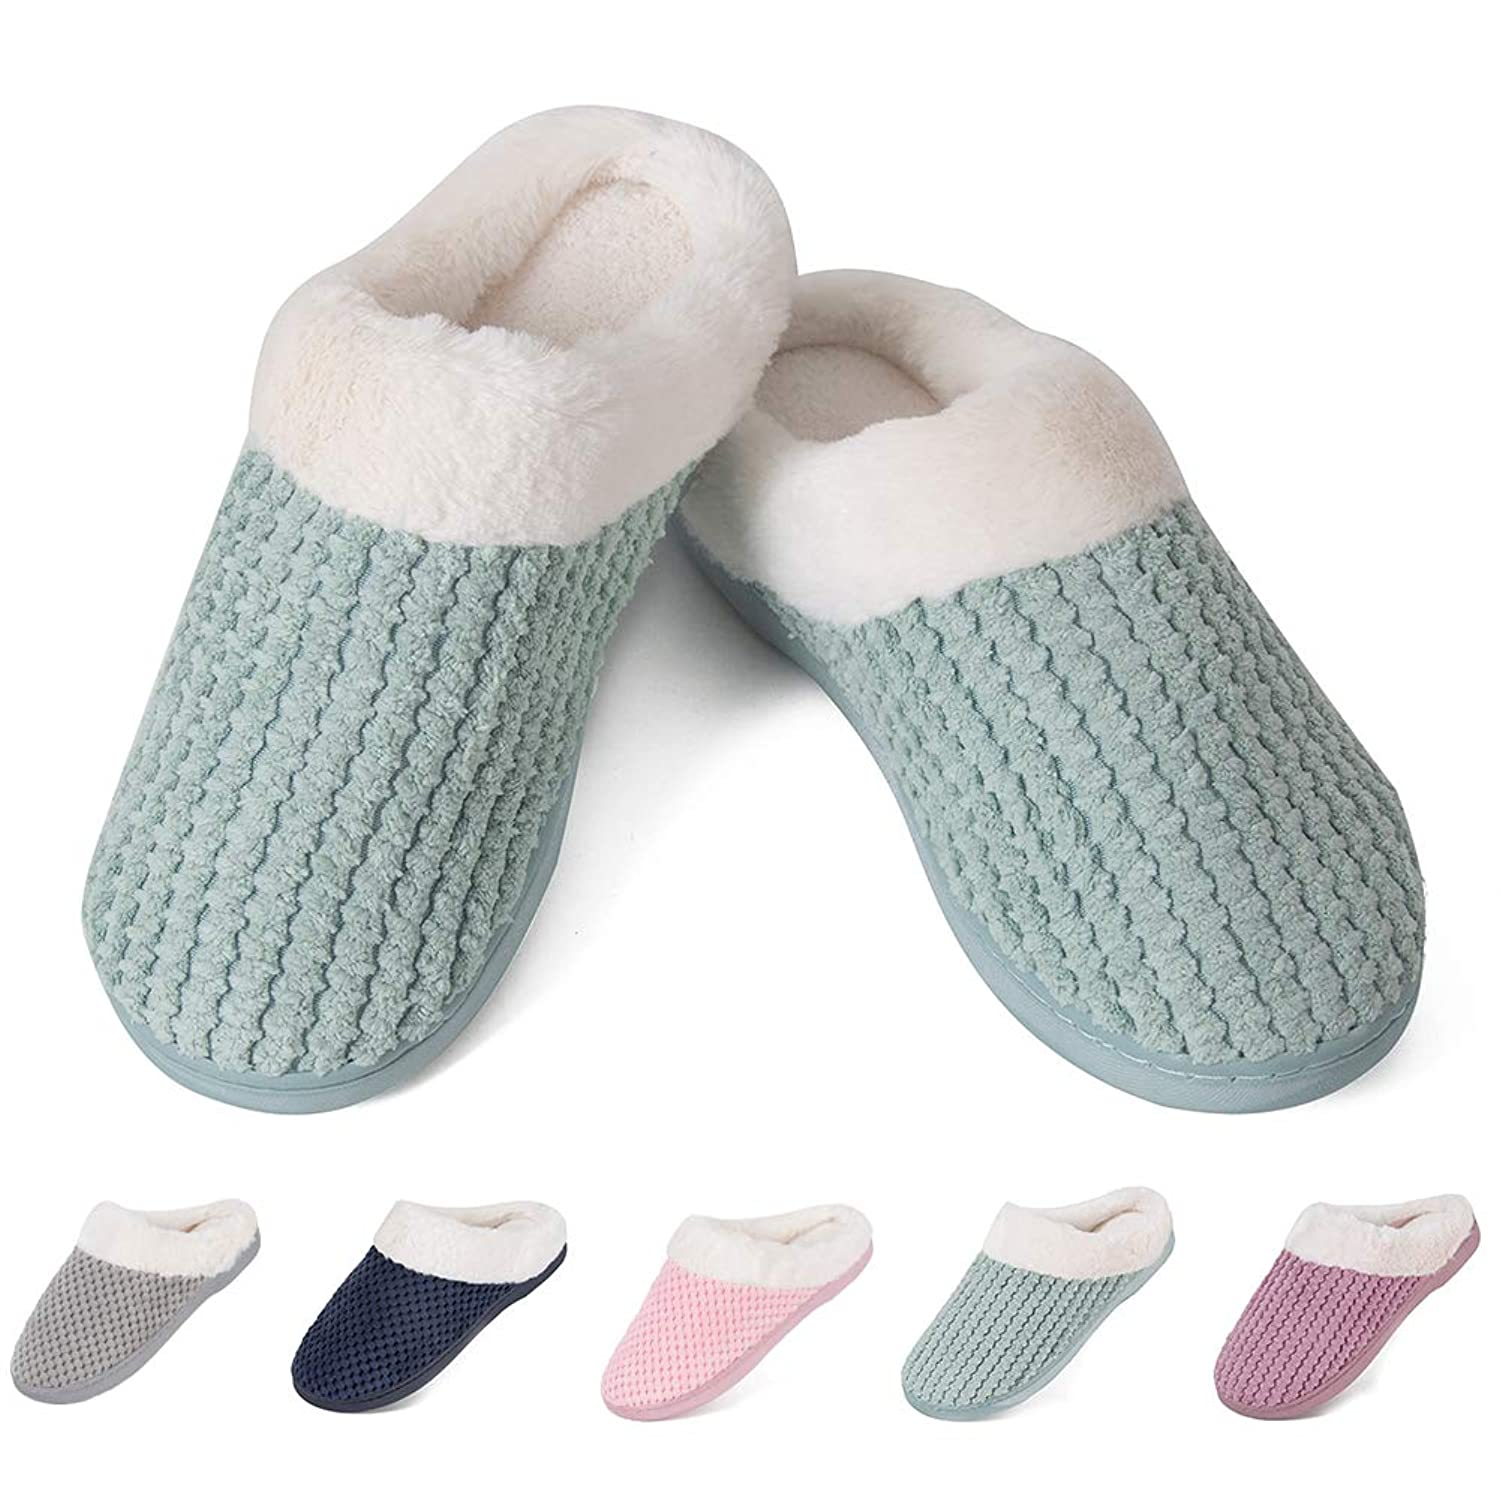 e12f5c30303347 Cozy Fleece Knitted Upper  These House Slippers Upper Has the Breathable  Knit Design and You Will Find that is so Cute. Slide Your Feet into the  Comfortable ...